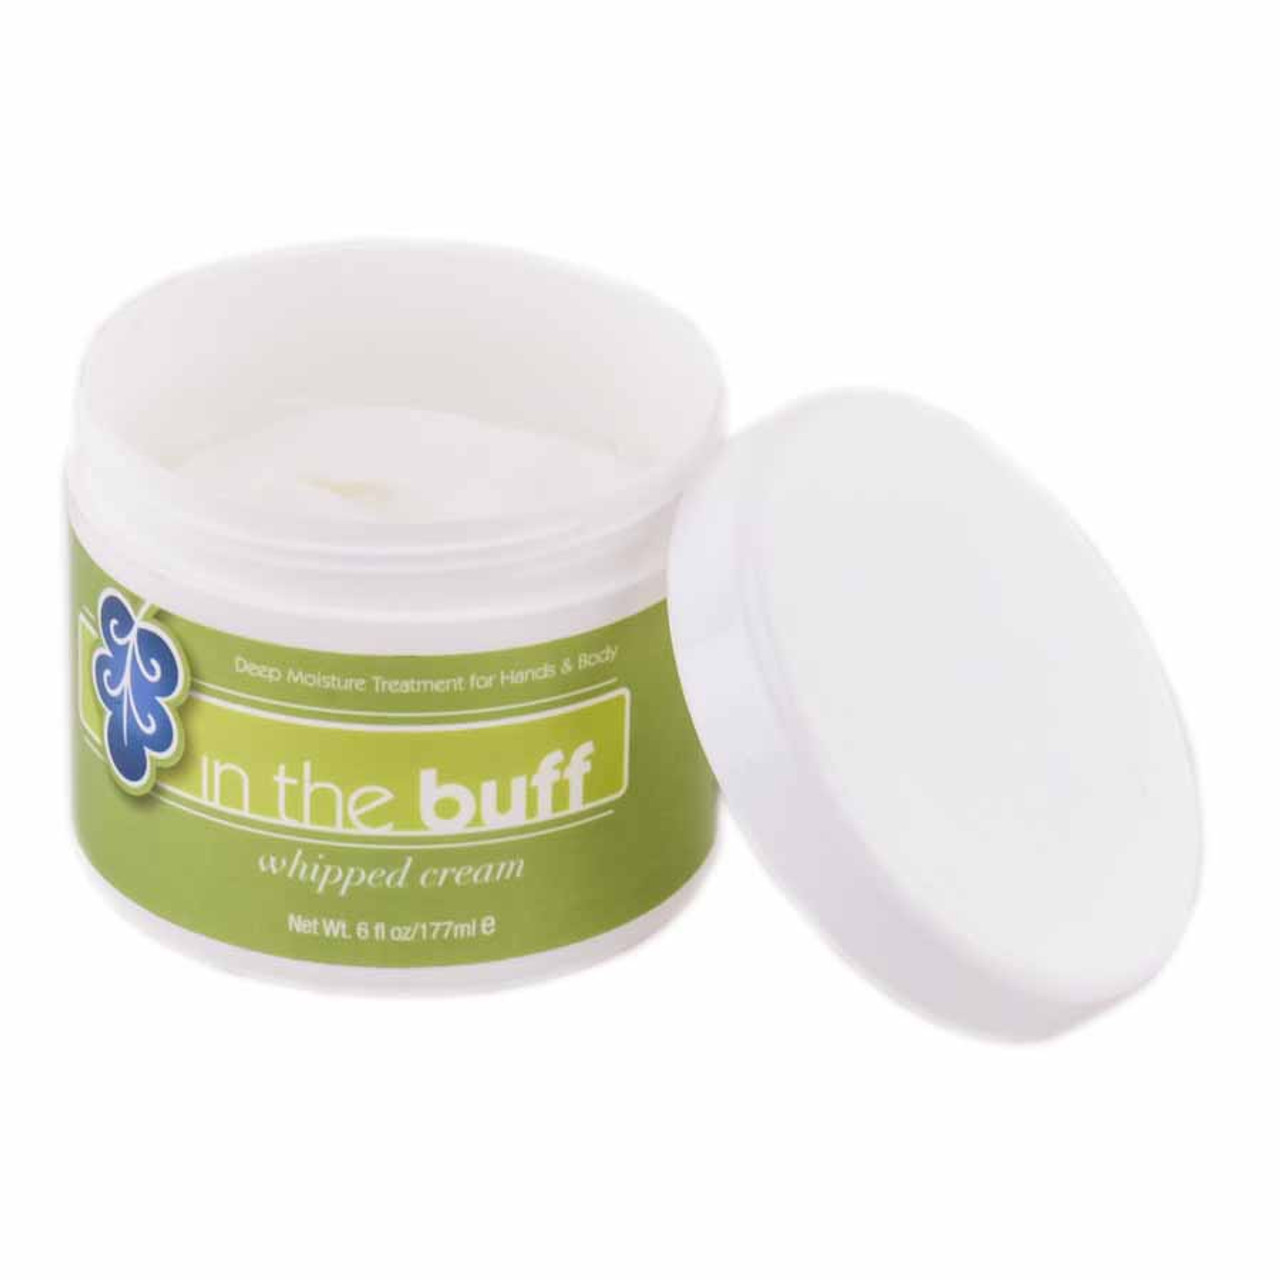 In the Buff Whipped Cream Deep Moisture Treatment (Size : 6 oz) Menscience Advanced Face Lotion 100ml/3.4oz